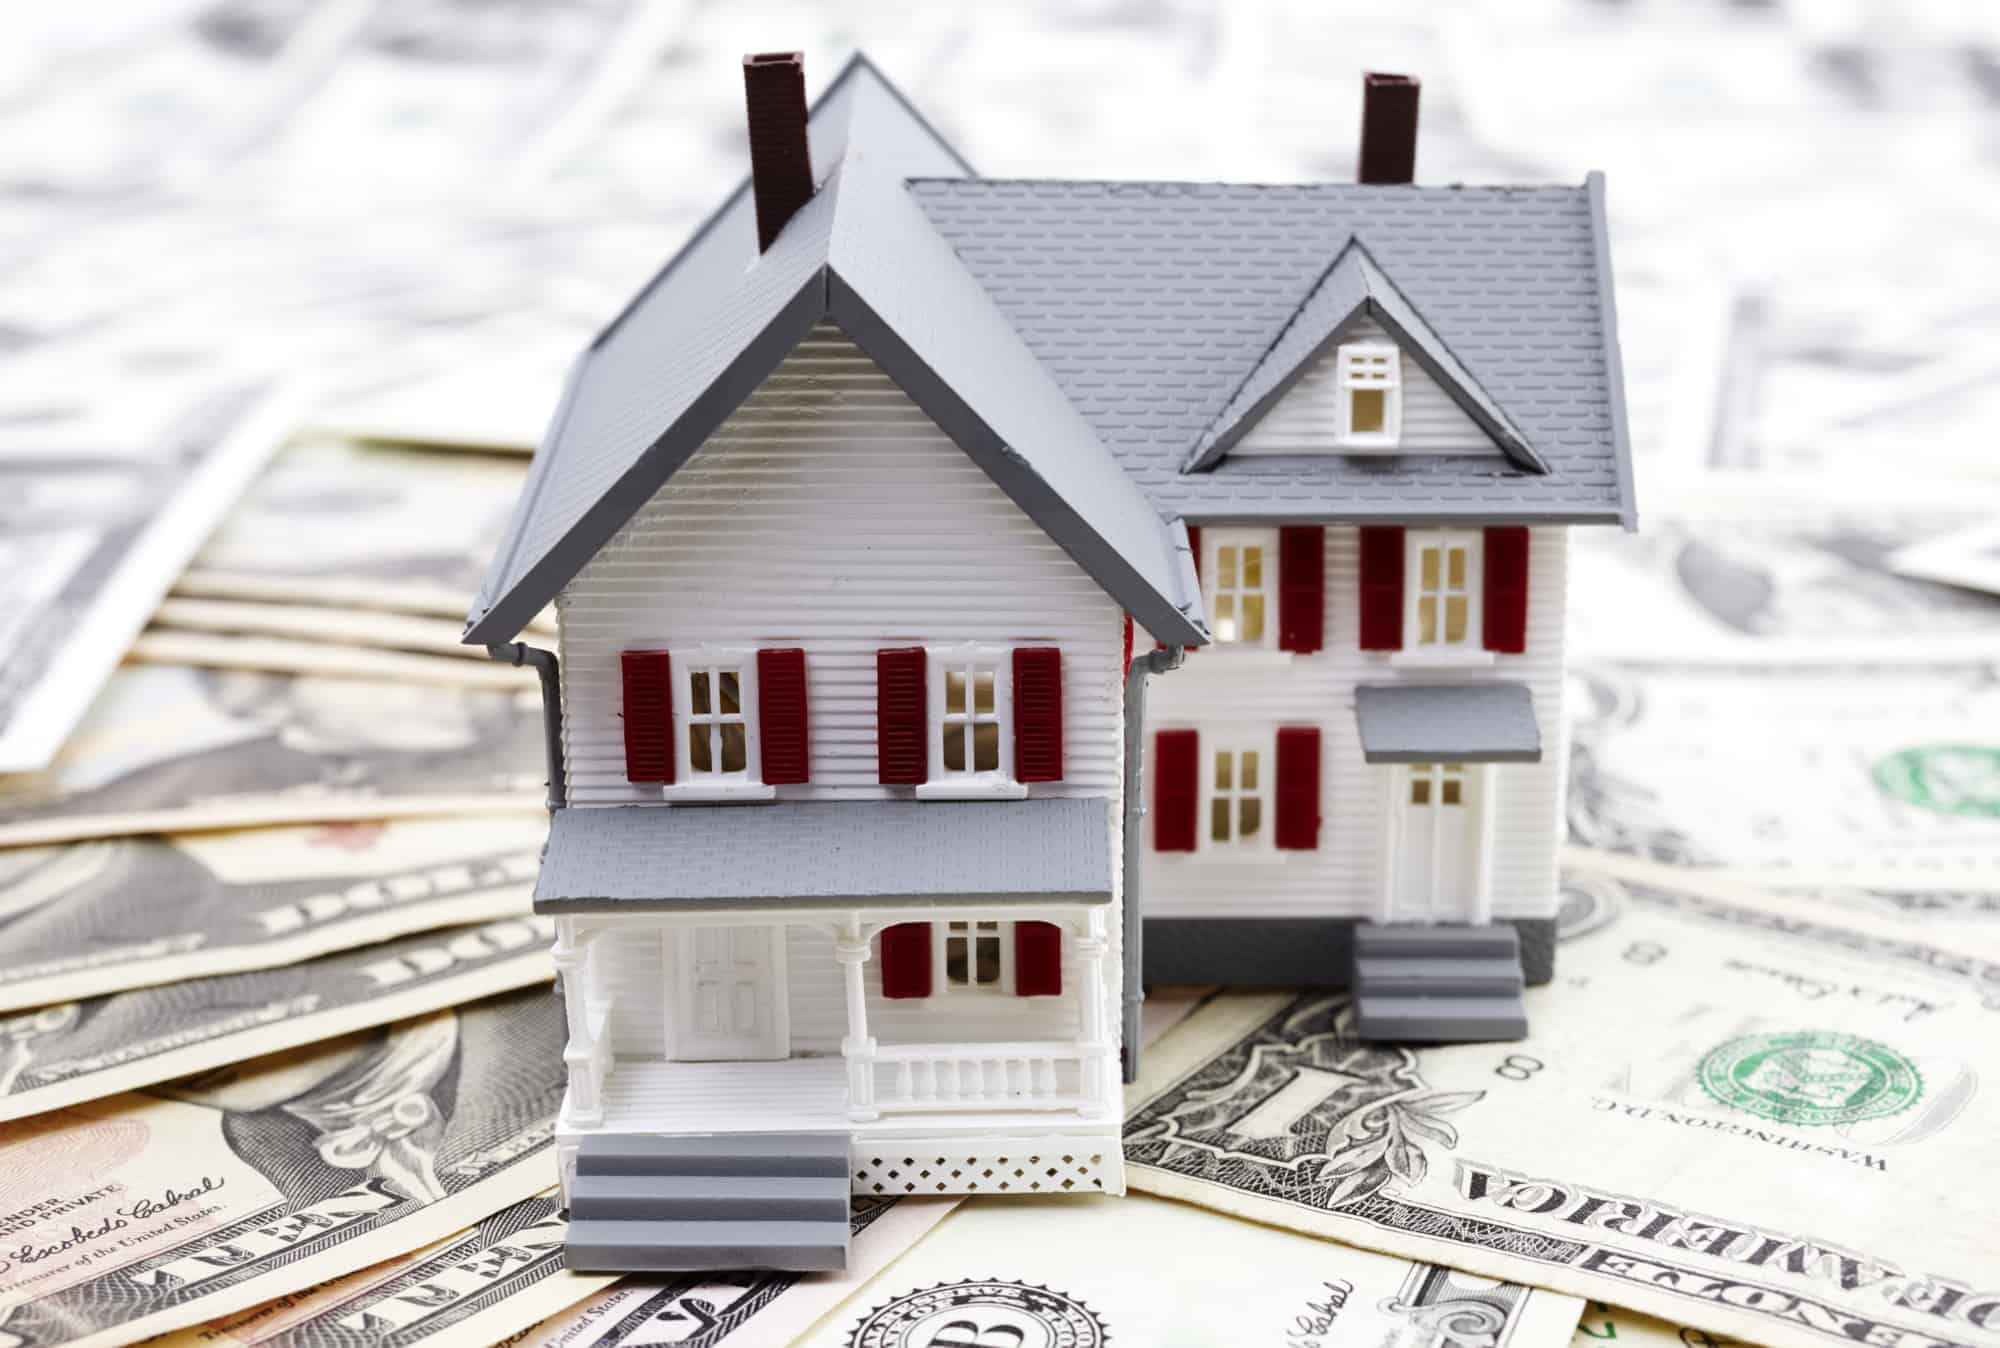 Crowdfunding is a great way to invest in real estate